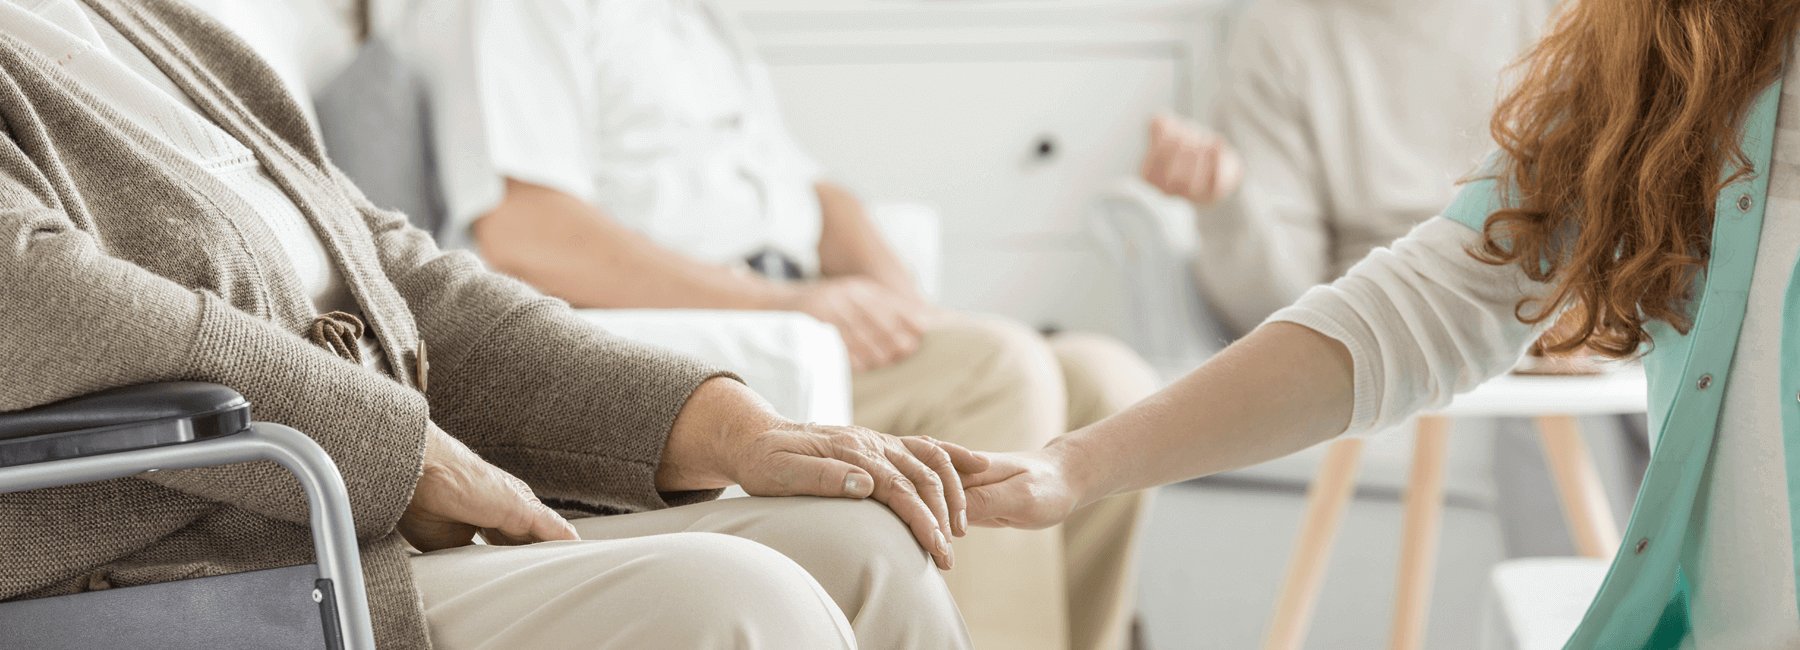 Braemar Care Services In Essex About Us